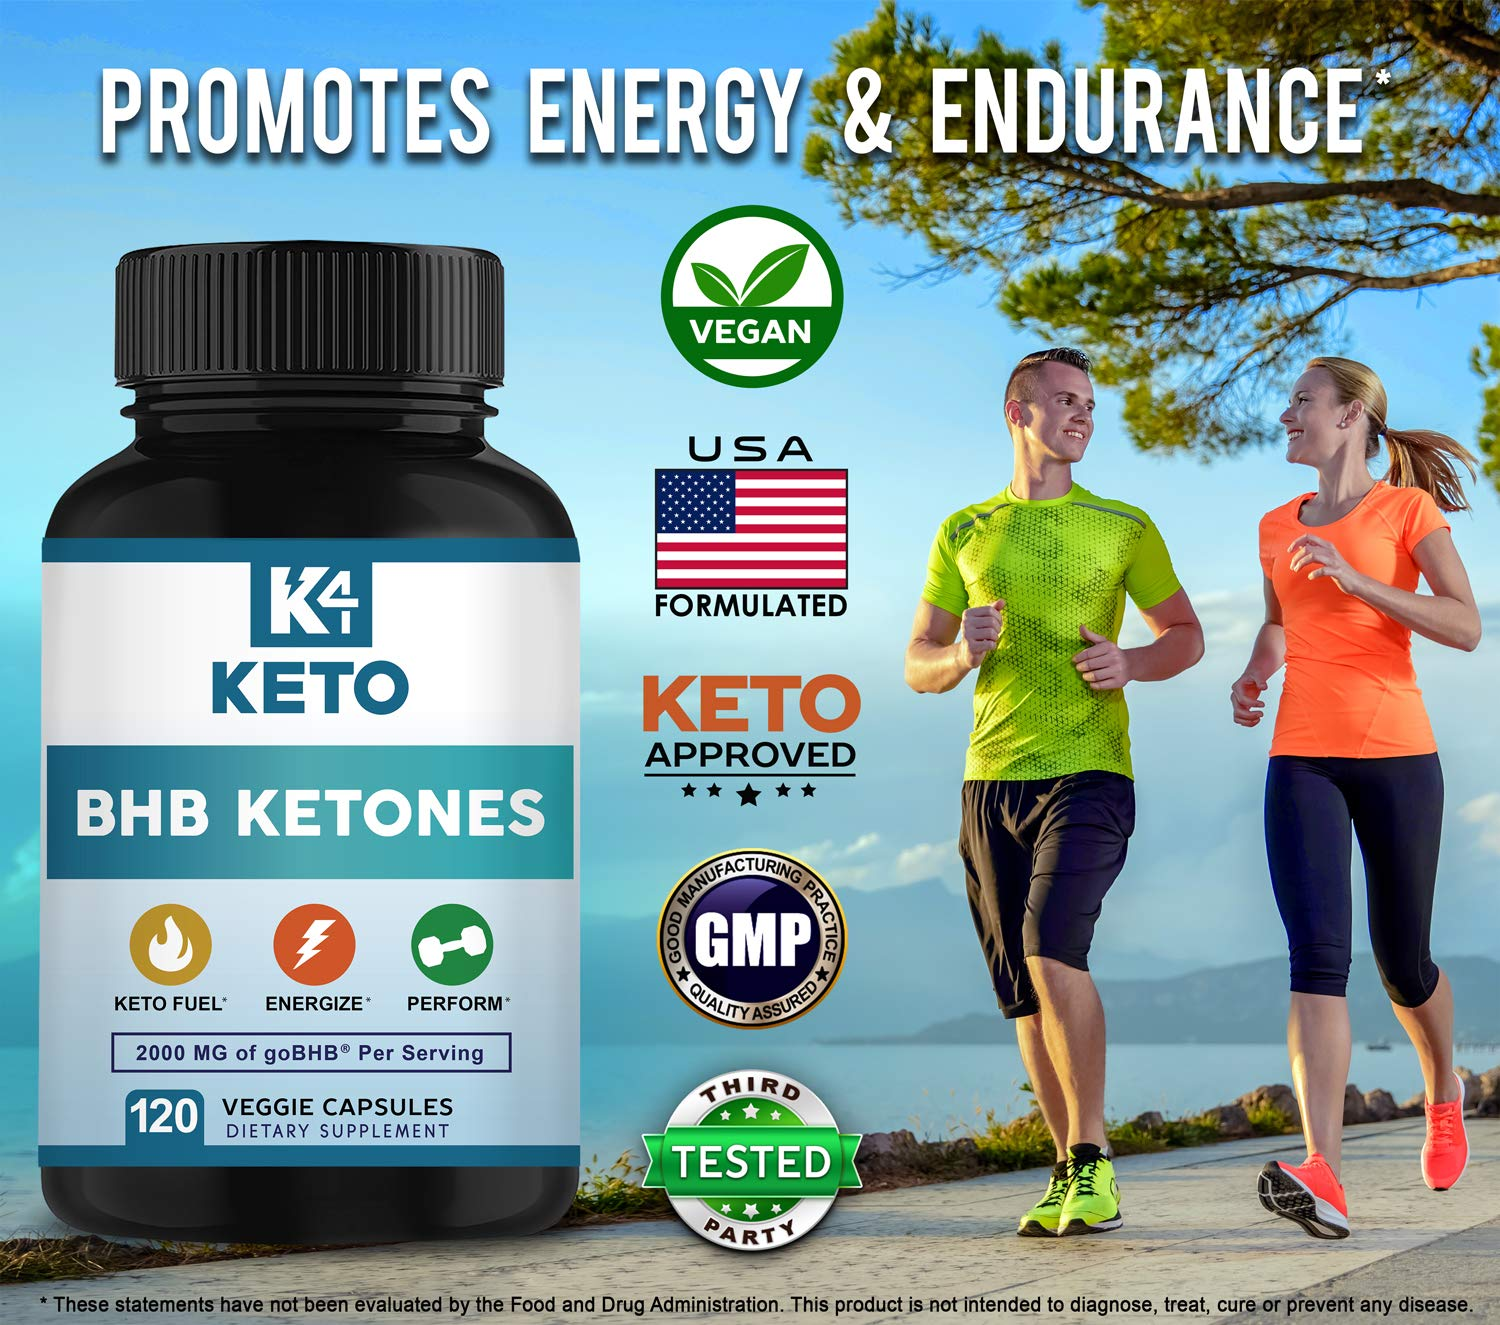 K4 Keto BHB - Exogenous Ketones BHB Salts Capsules - 2000mg of Patented goBHB Beta-Hydroxybutyrate - Ketone Supplement Pills to Support Ketogenic Diet & Ketosis by K4 Keto (Image #3)